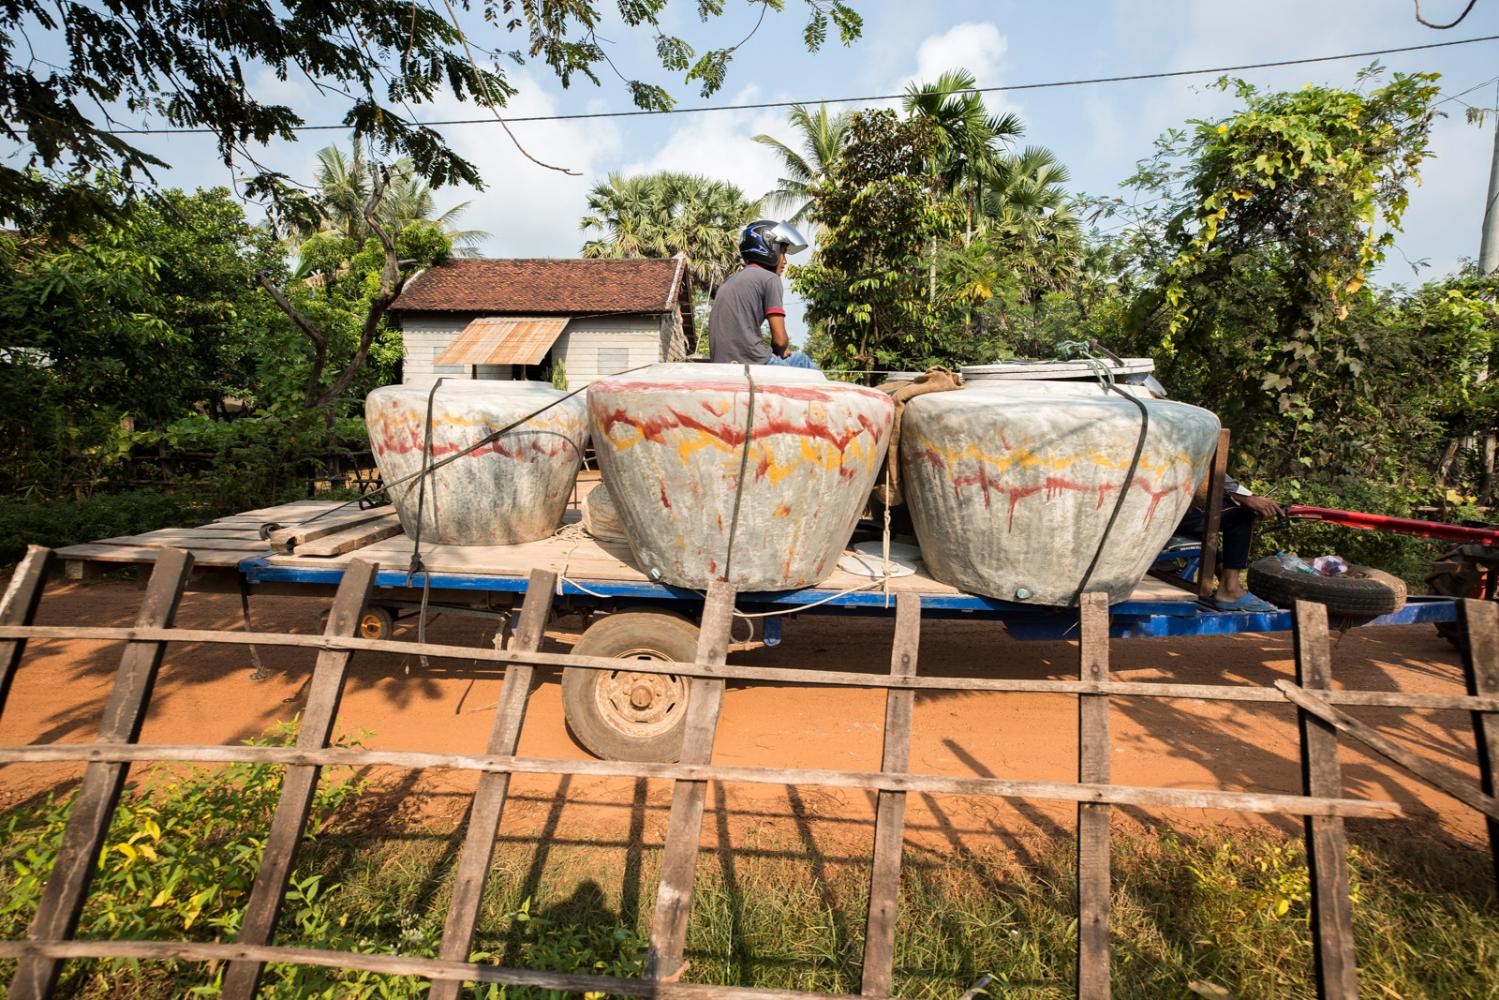 Large water jars used by villagers, schools and temples to collect rain water and used for cooking and drinking in rural Cambodia being transported. They are also the main culprit for breeding mosquitos and are believed to be one of the main causes for recent dengue fever outbreaks in Cambodia which has seen record numbers. Siem Reap Province, Cambodia - October 2019